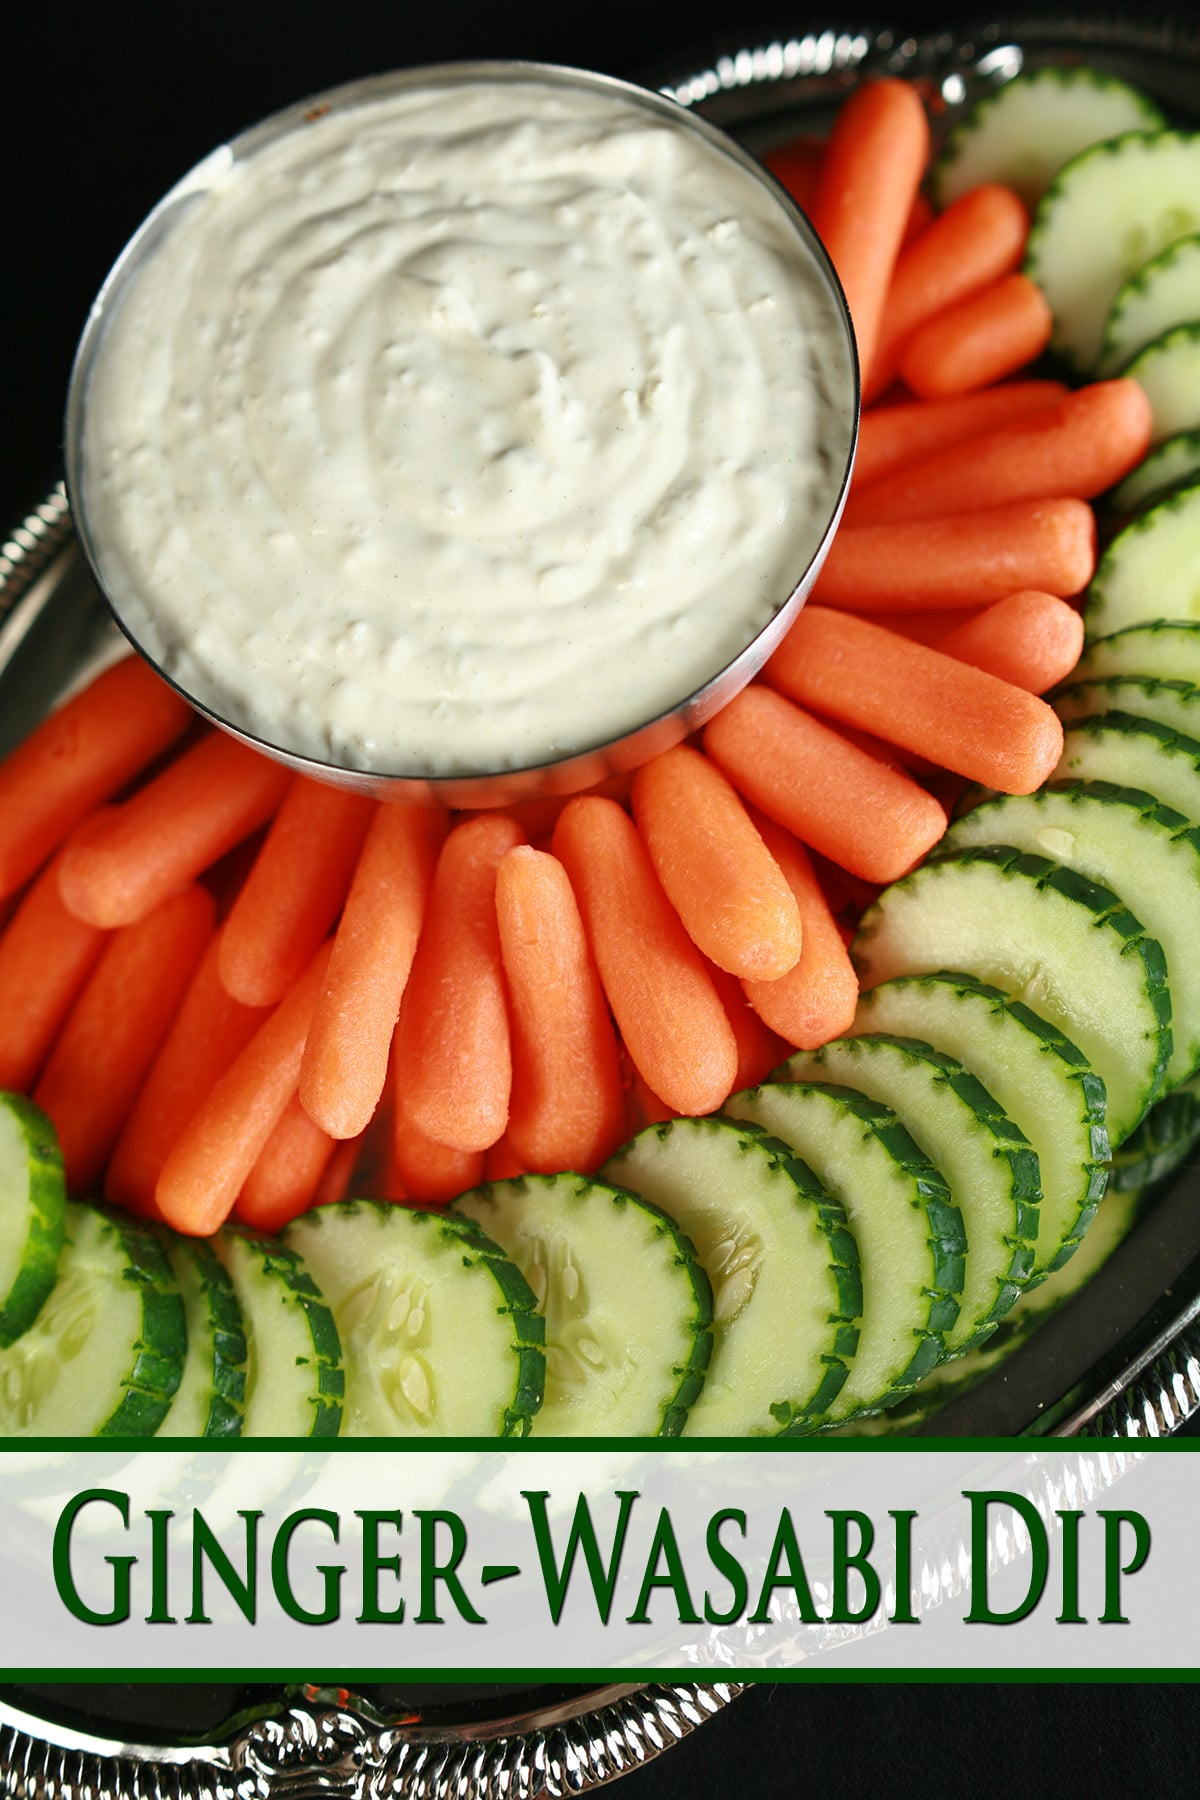 A bowl of wasabi ginger dip, surrounded by cucumber slices and baby carrots.